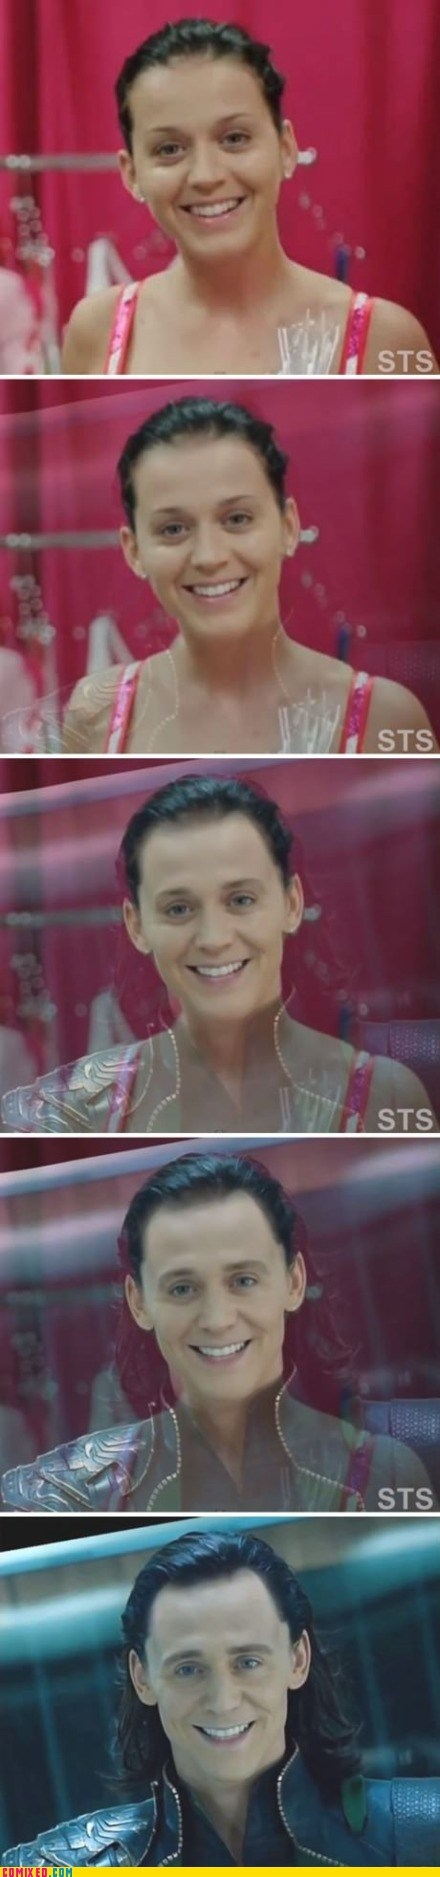 best of week,From the Movies,katy perry,loki,Memes,photoshop,The Avengers